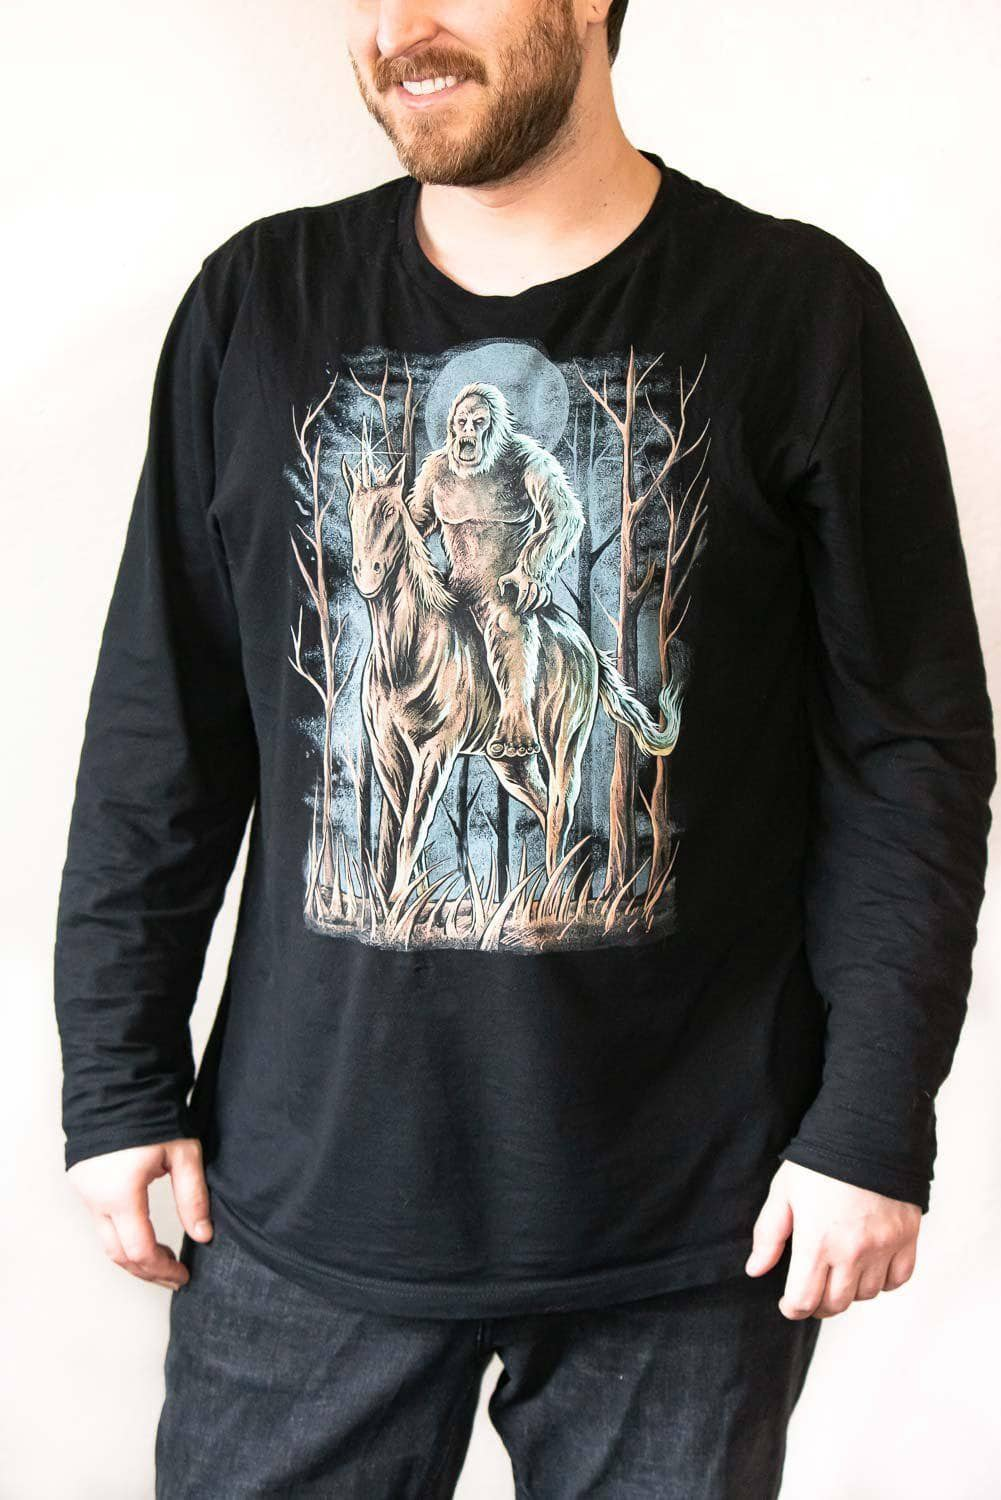 Midnight Encounter - Unisex Long Sleeve Shirt - Fernweh Gear